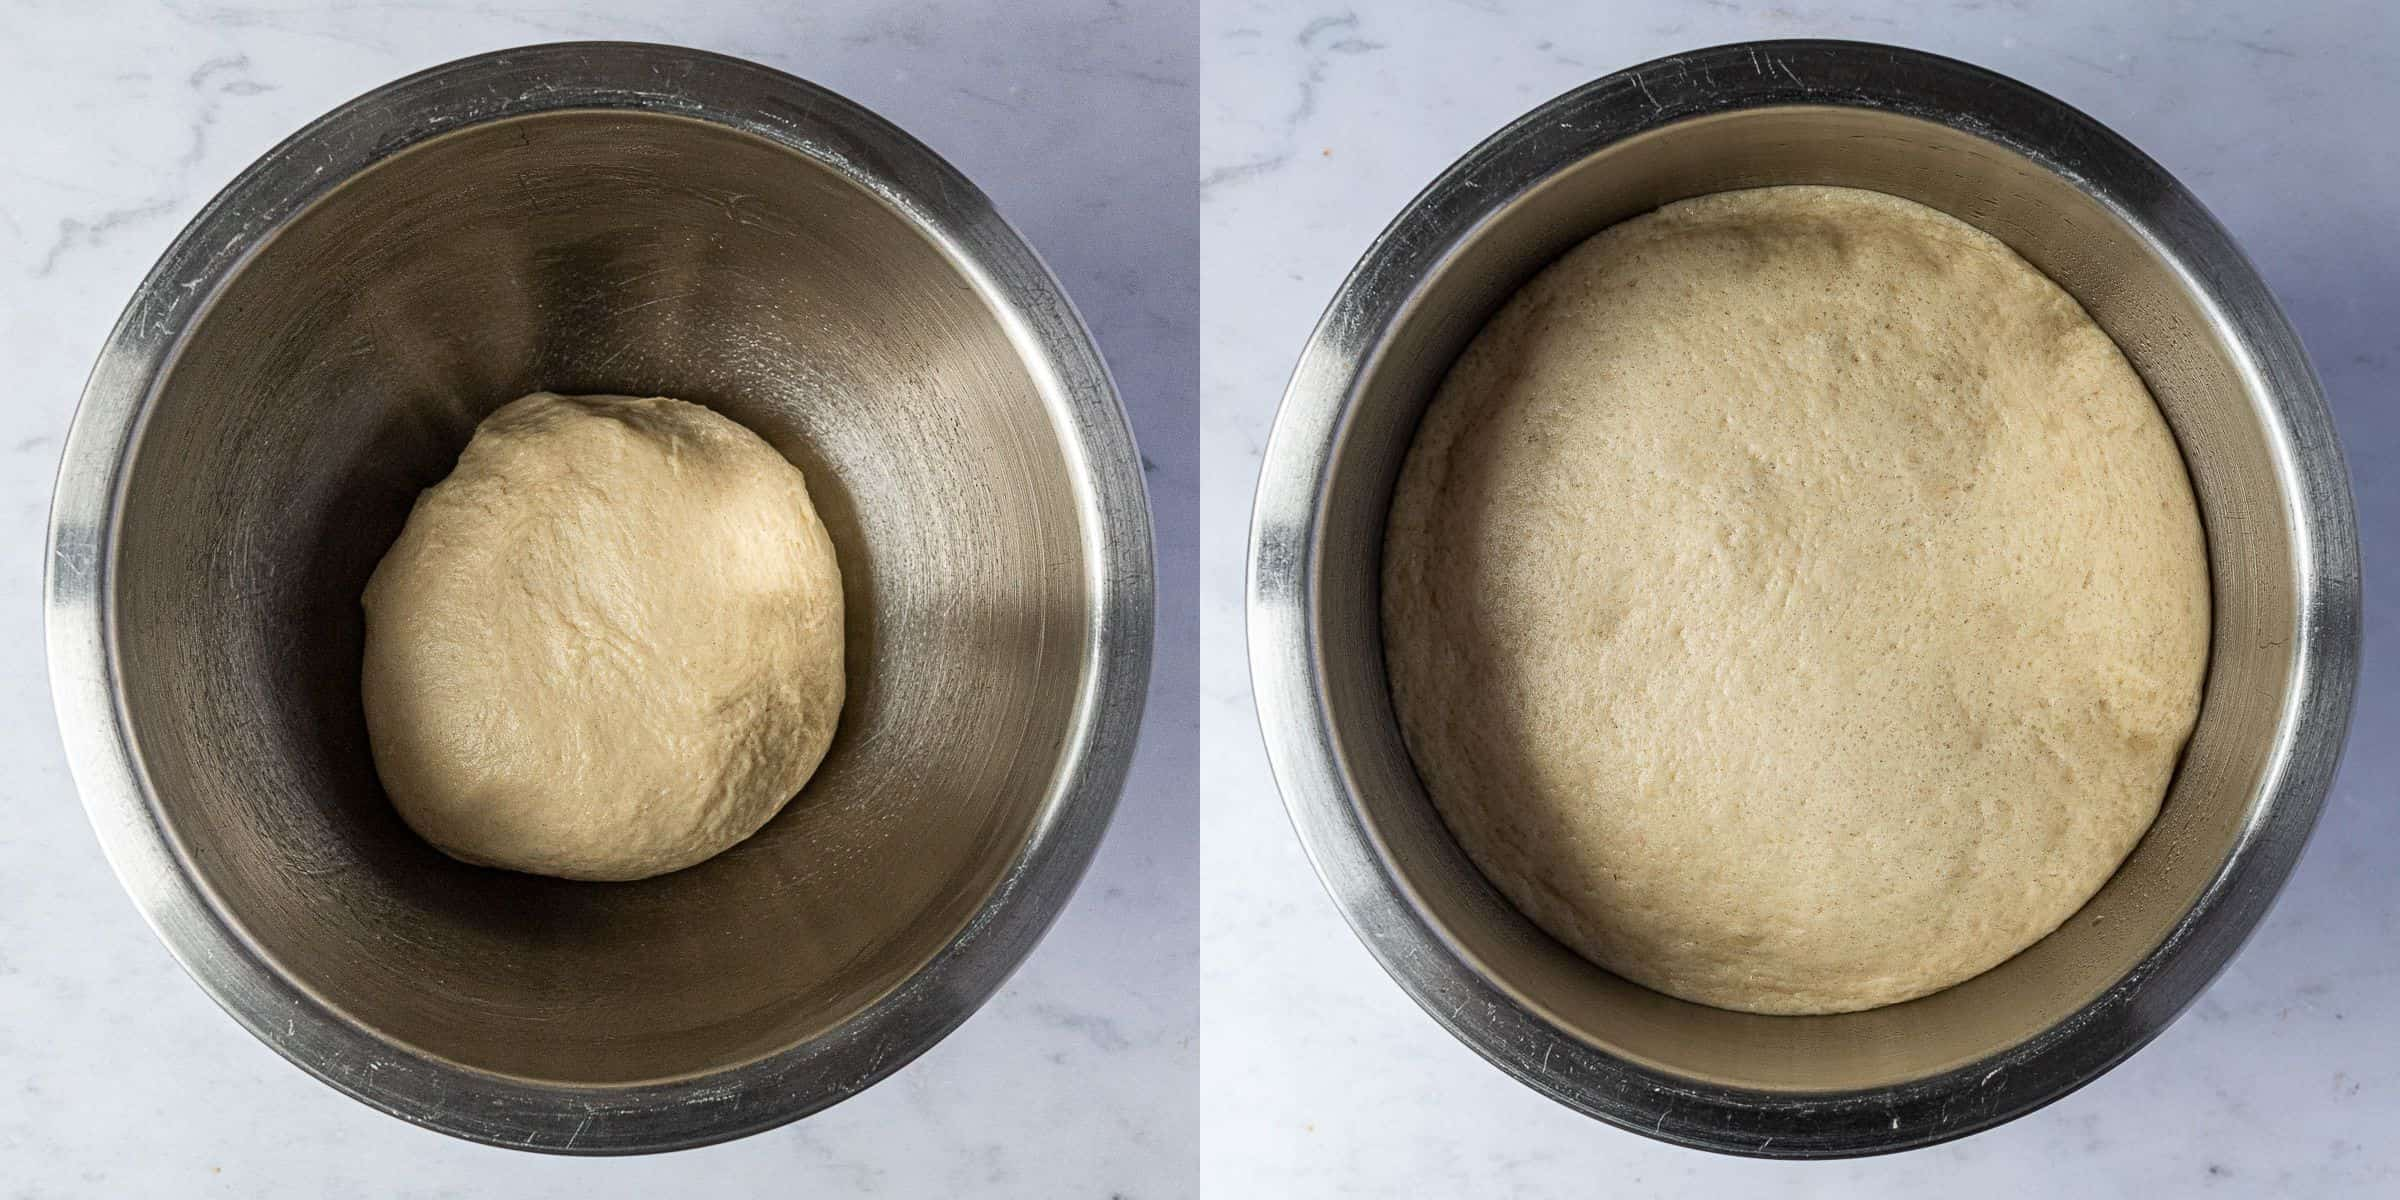 Step 3, a two image collage of the dough before and after rising.